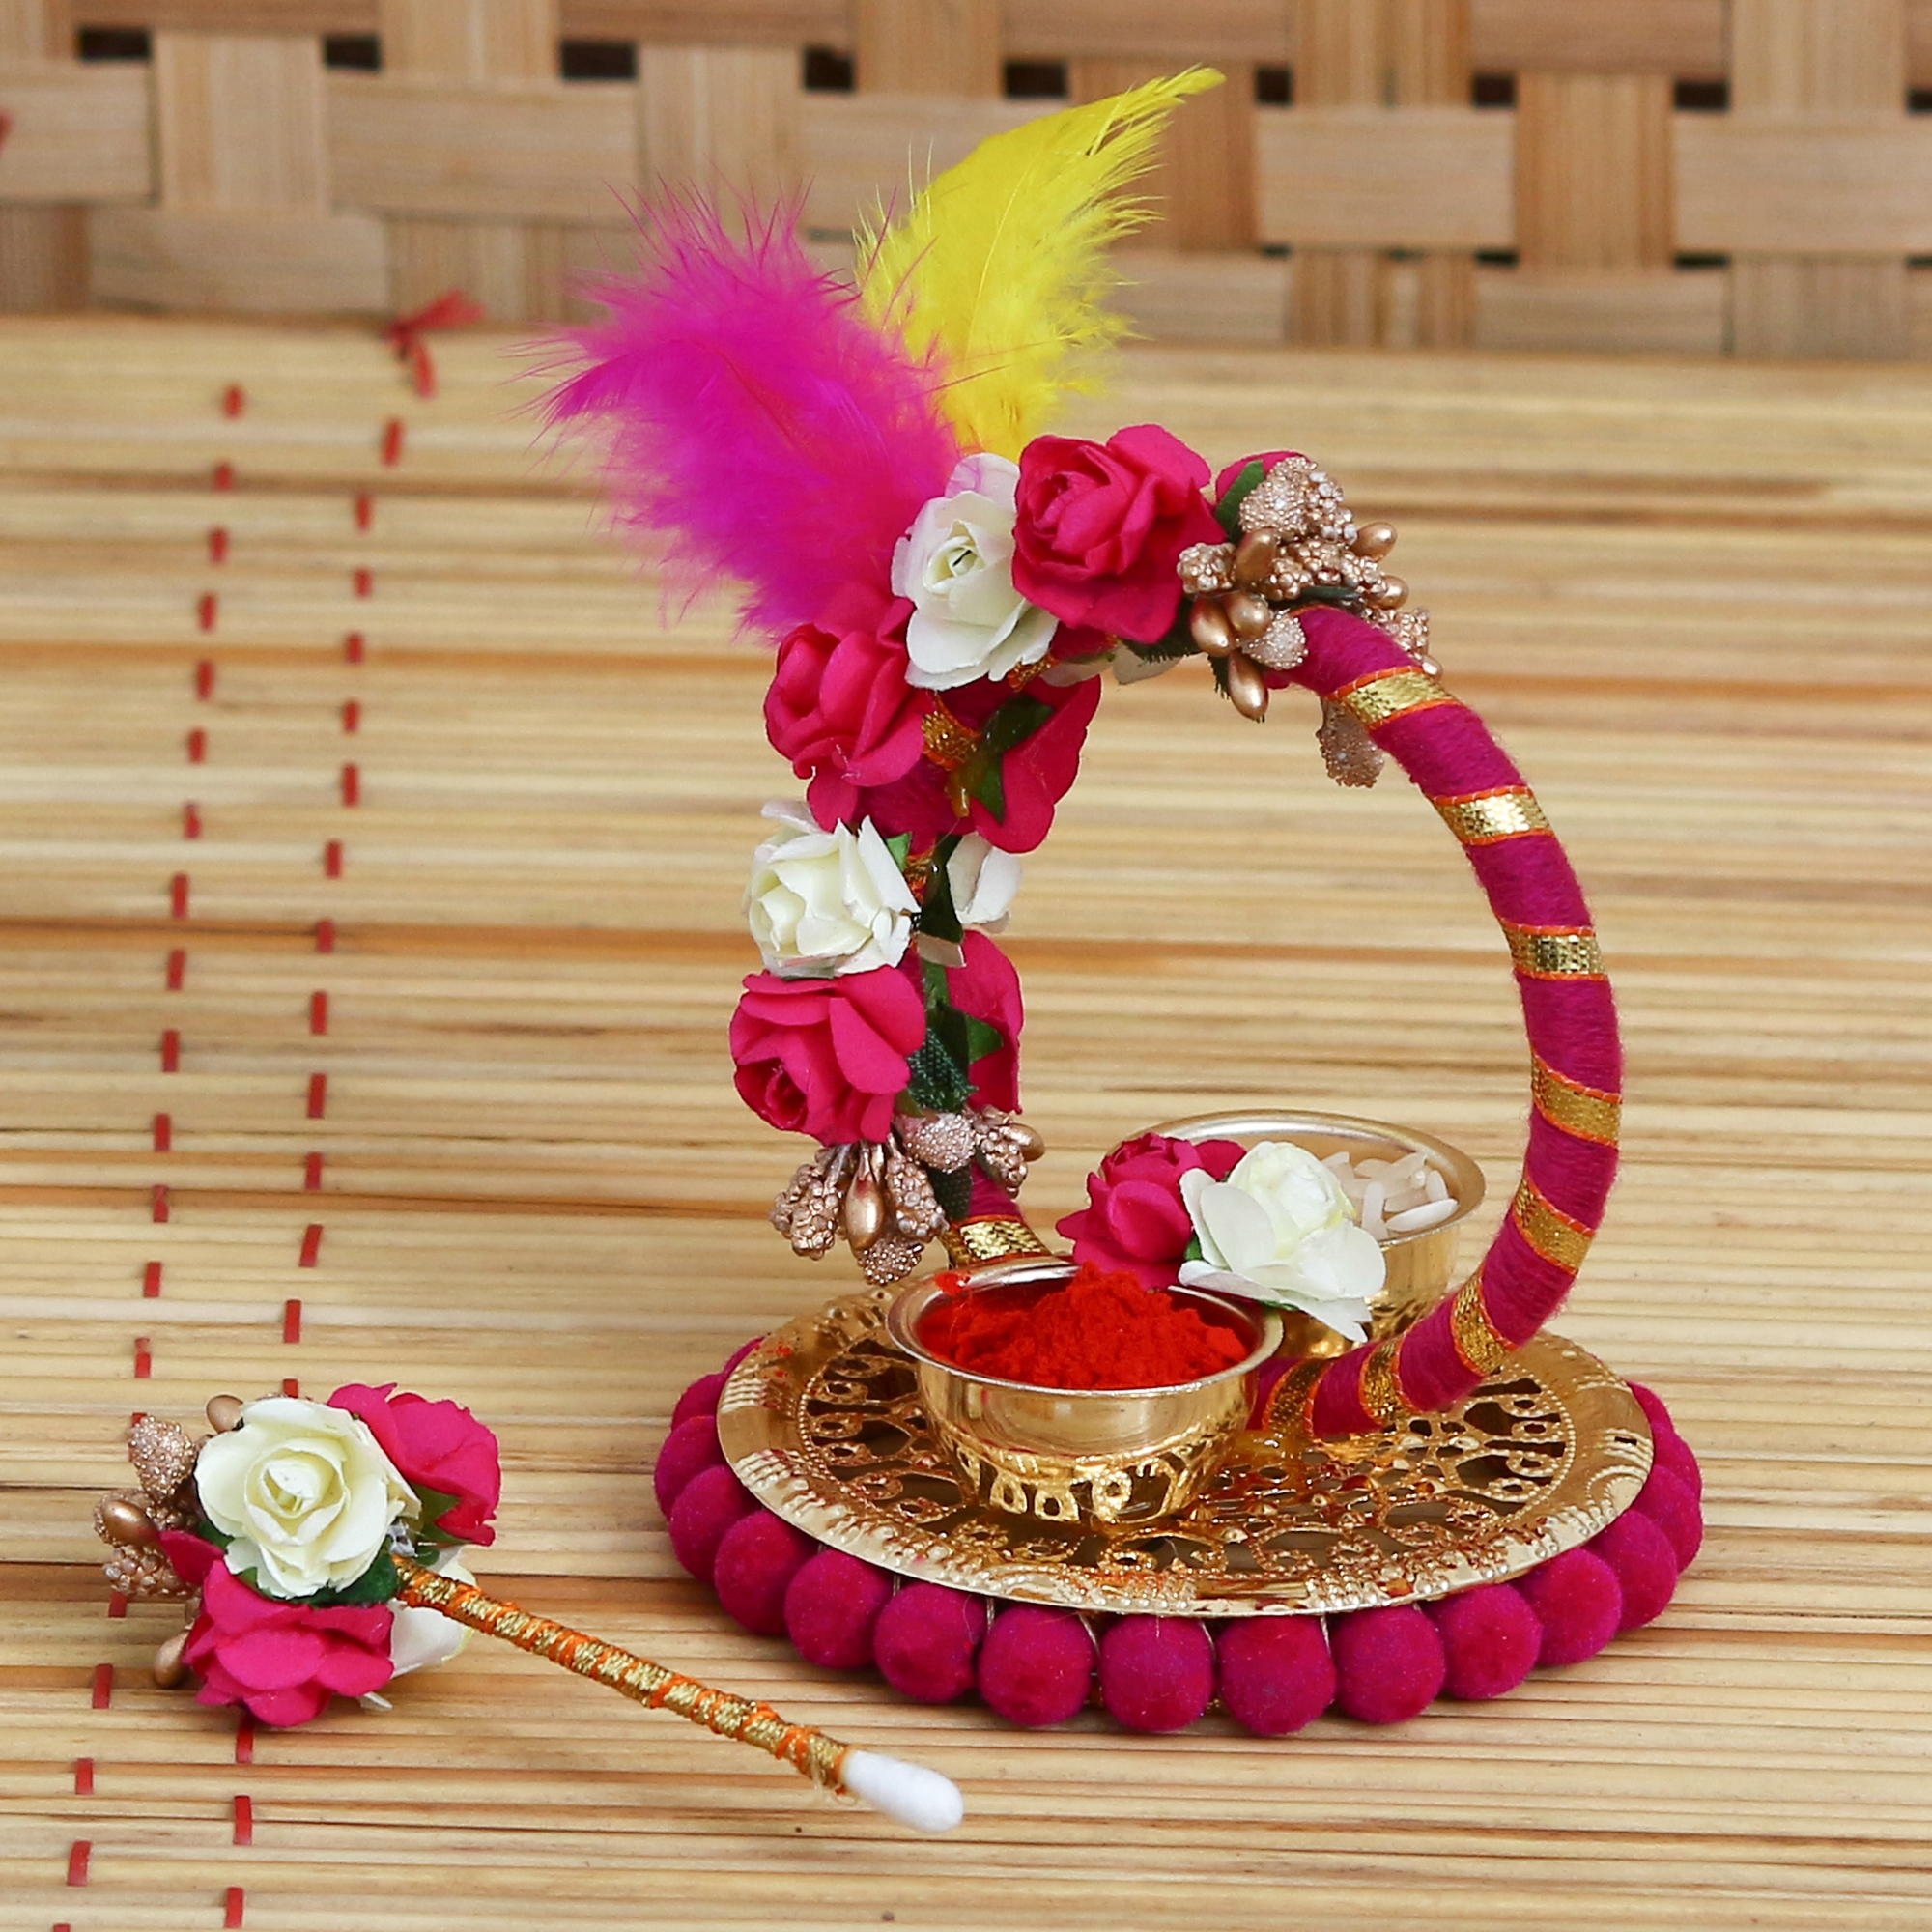 Handcrafted Decorative Roli Tikka Holder with designer stick and Colorful Feathers Indian Home Decor